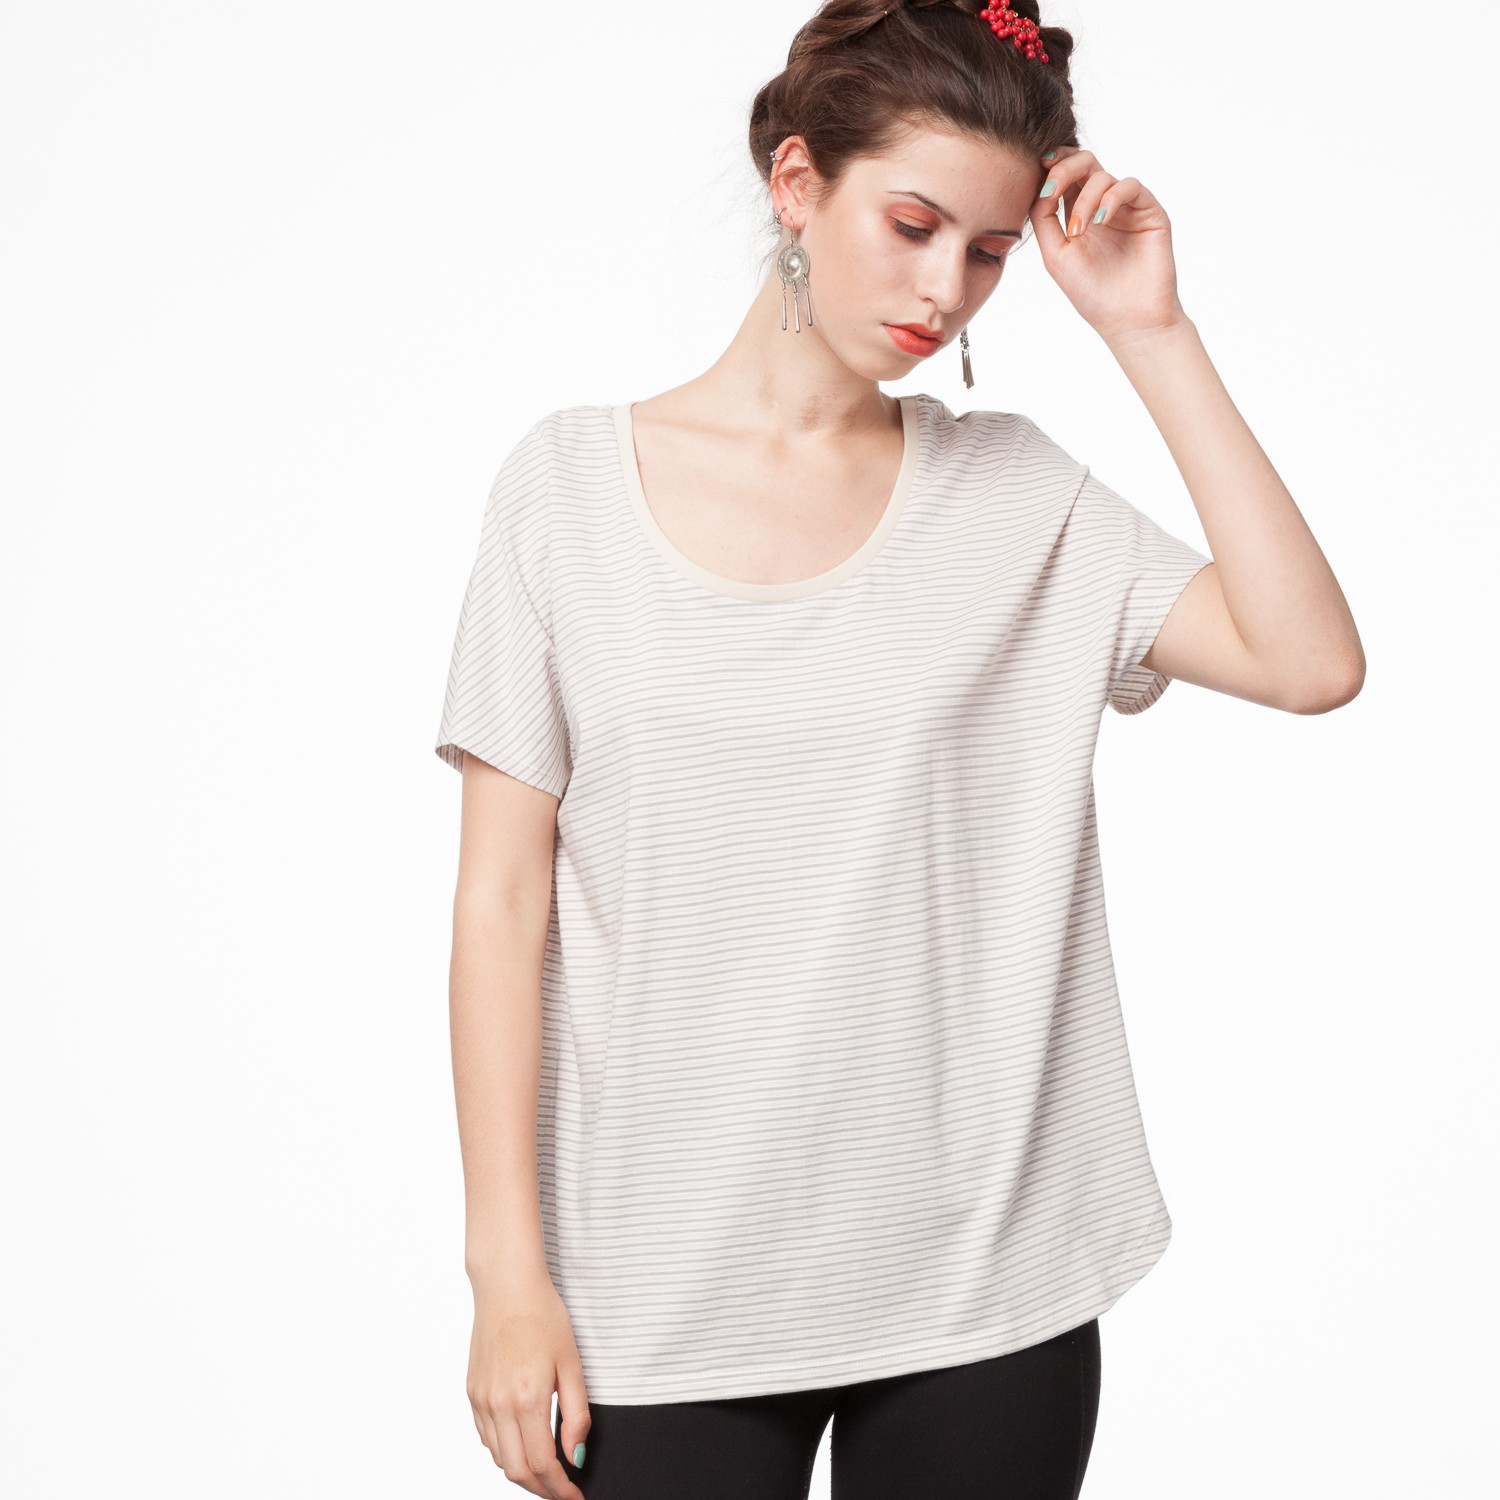 Oversized T-shirt triple striped from The Blind Spot